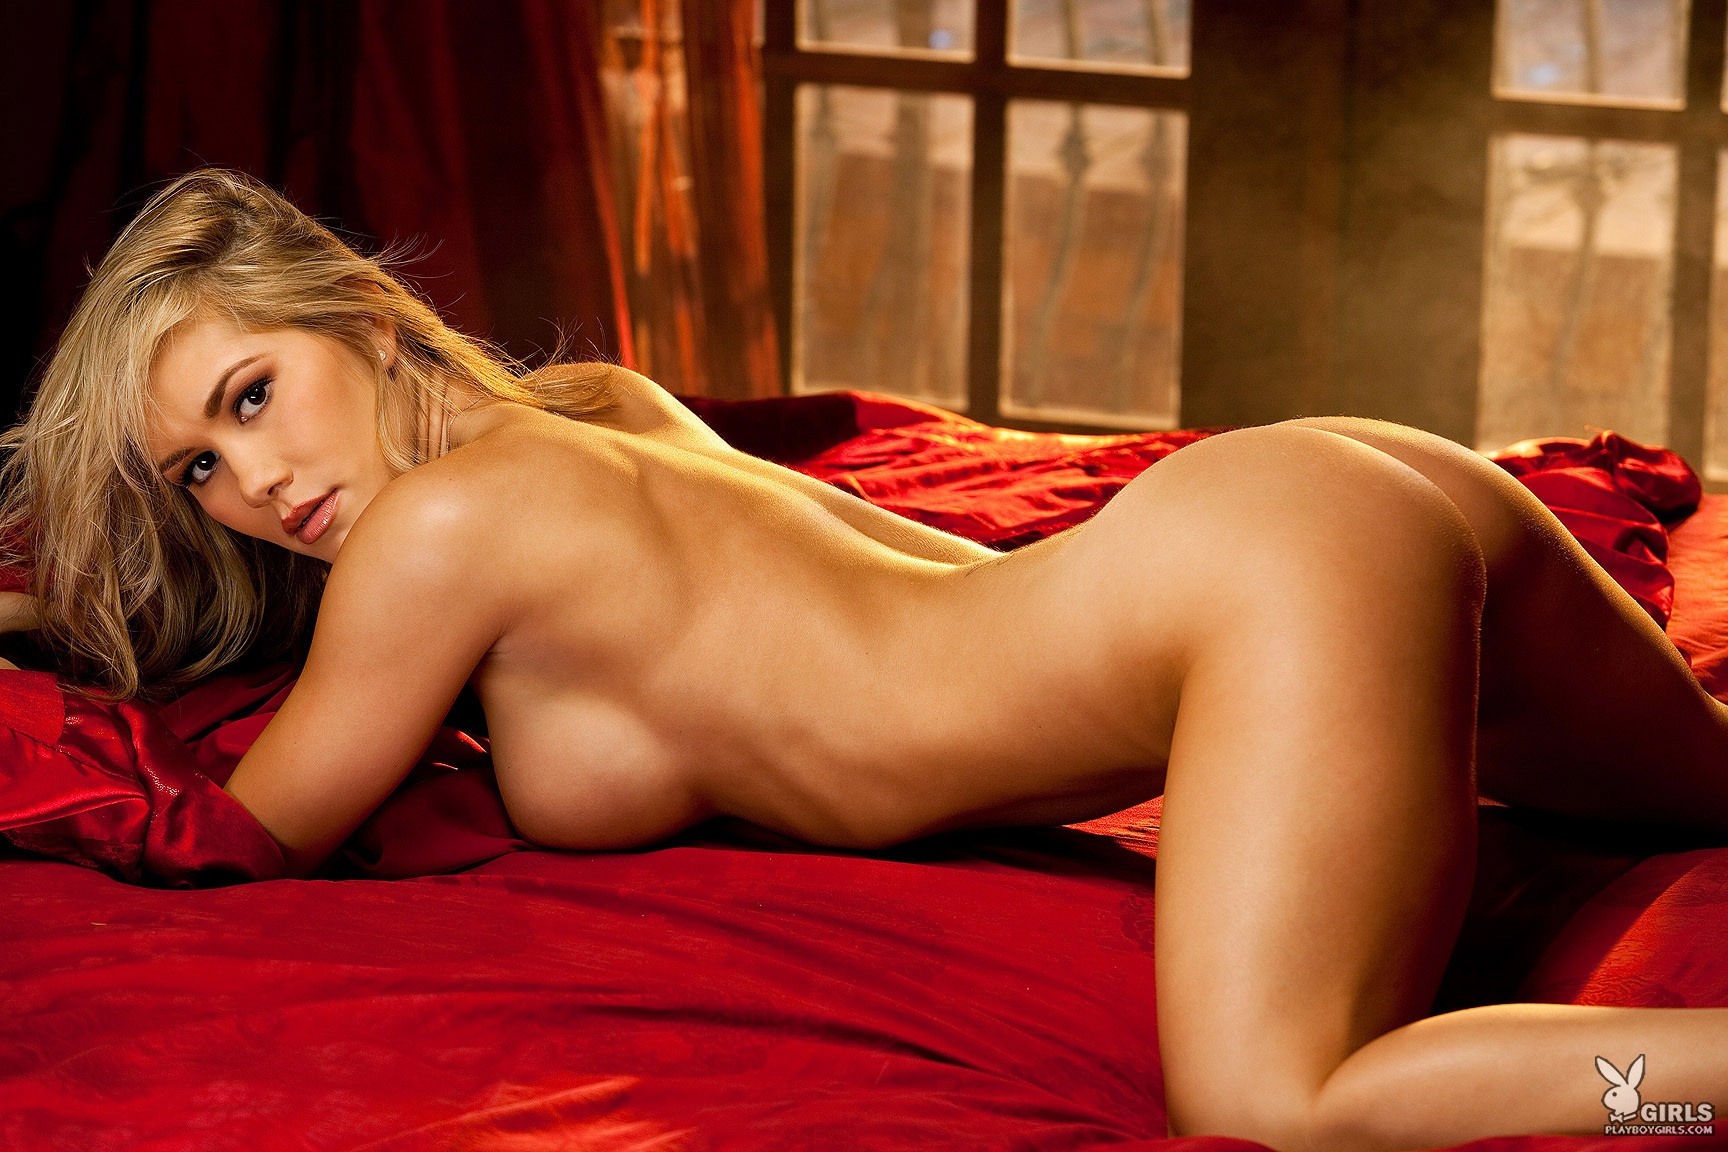 Red bone playboy girl nude #8